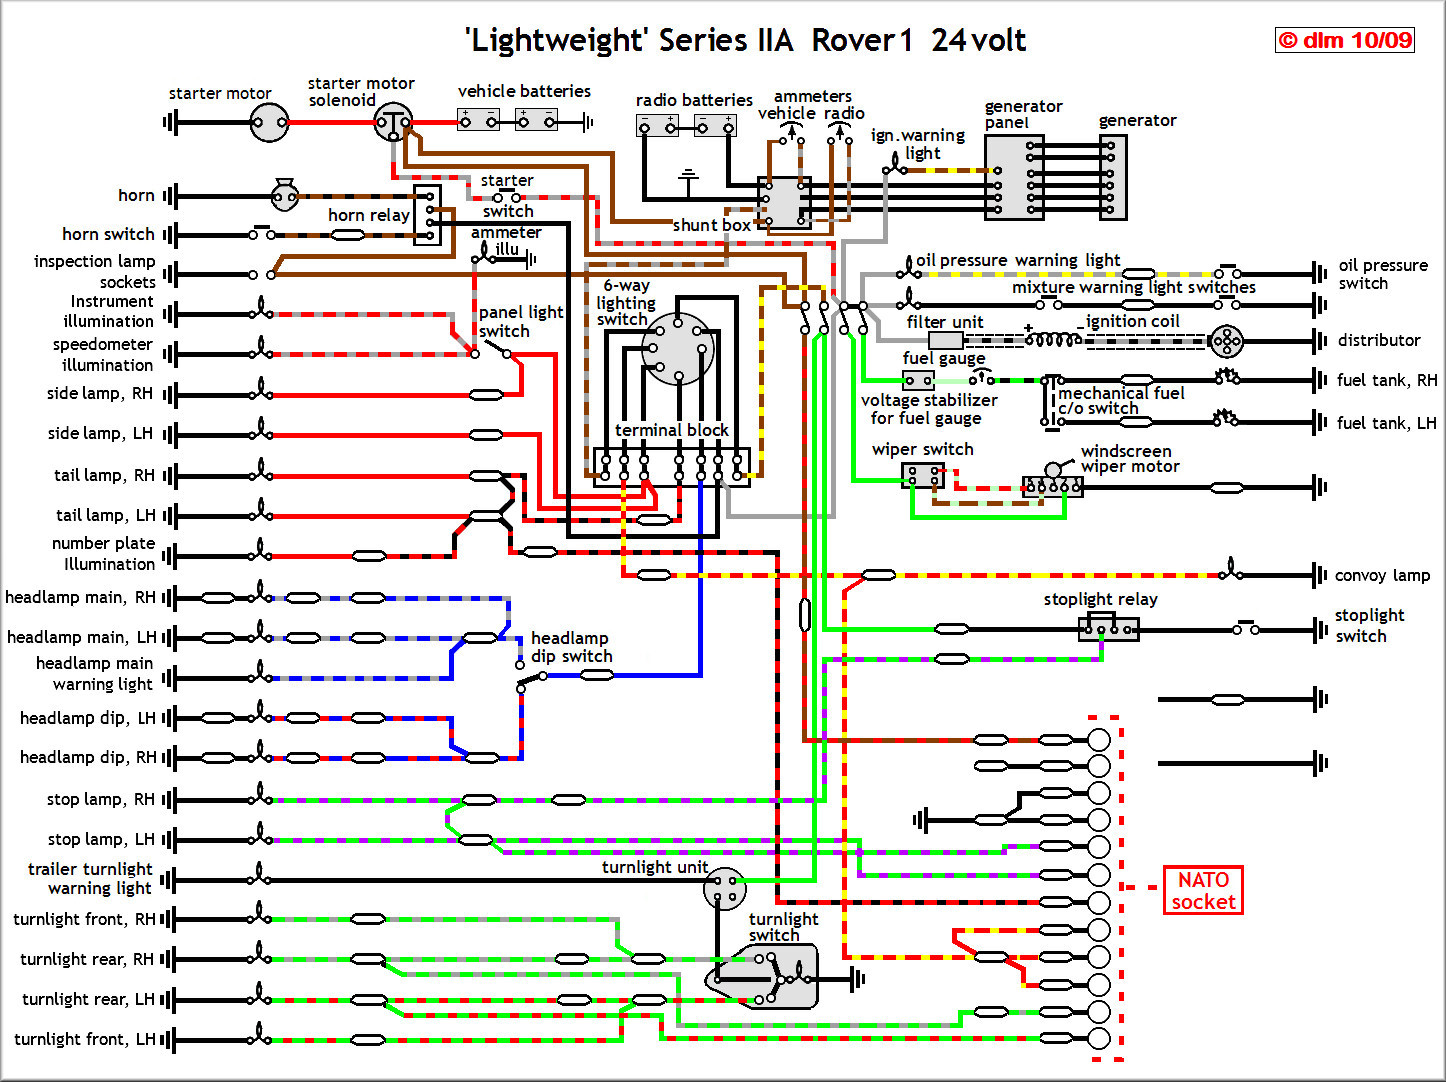 rover1 24Av lr3 trailer wiring diagram 7 pin trailer wiring diagram \u2022 wiring 2005 Land Rover LR3 Interior at n-0.co